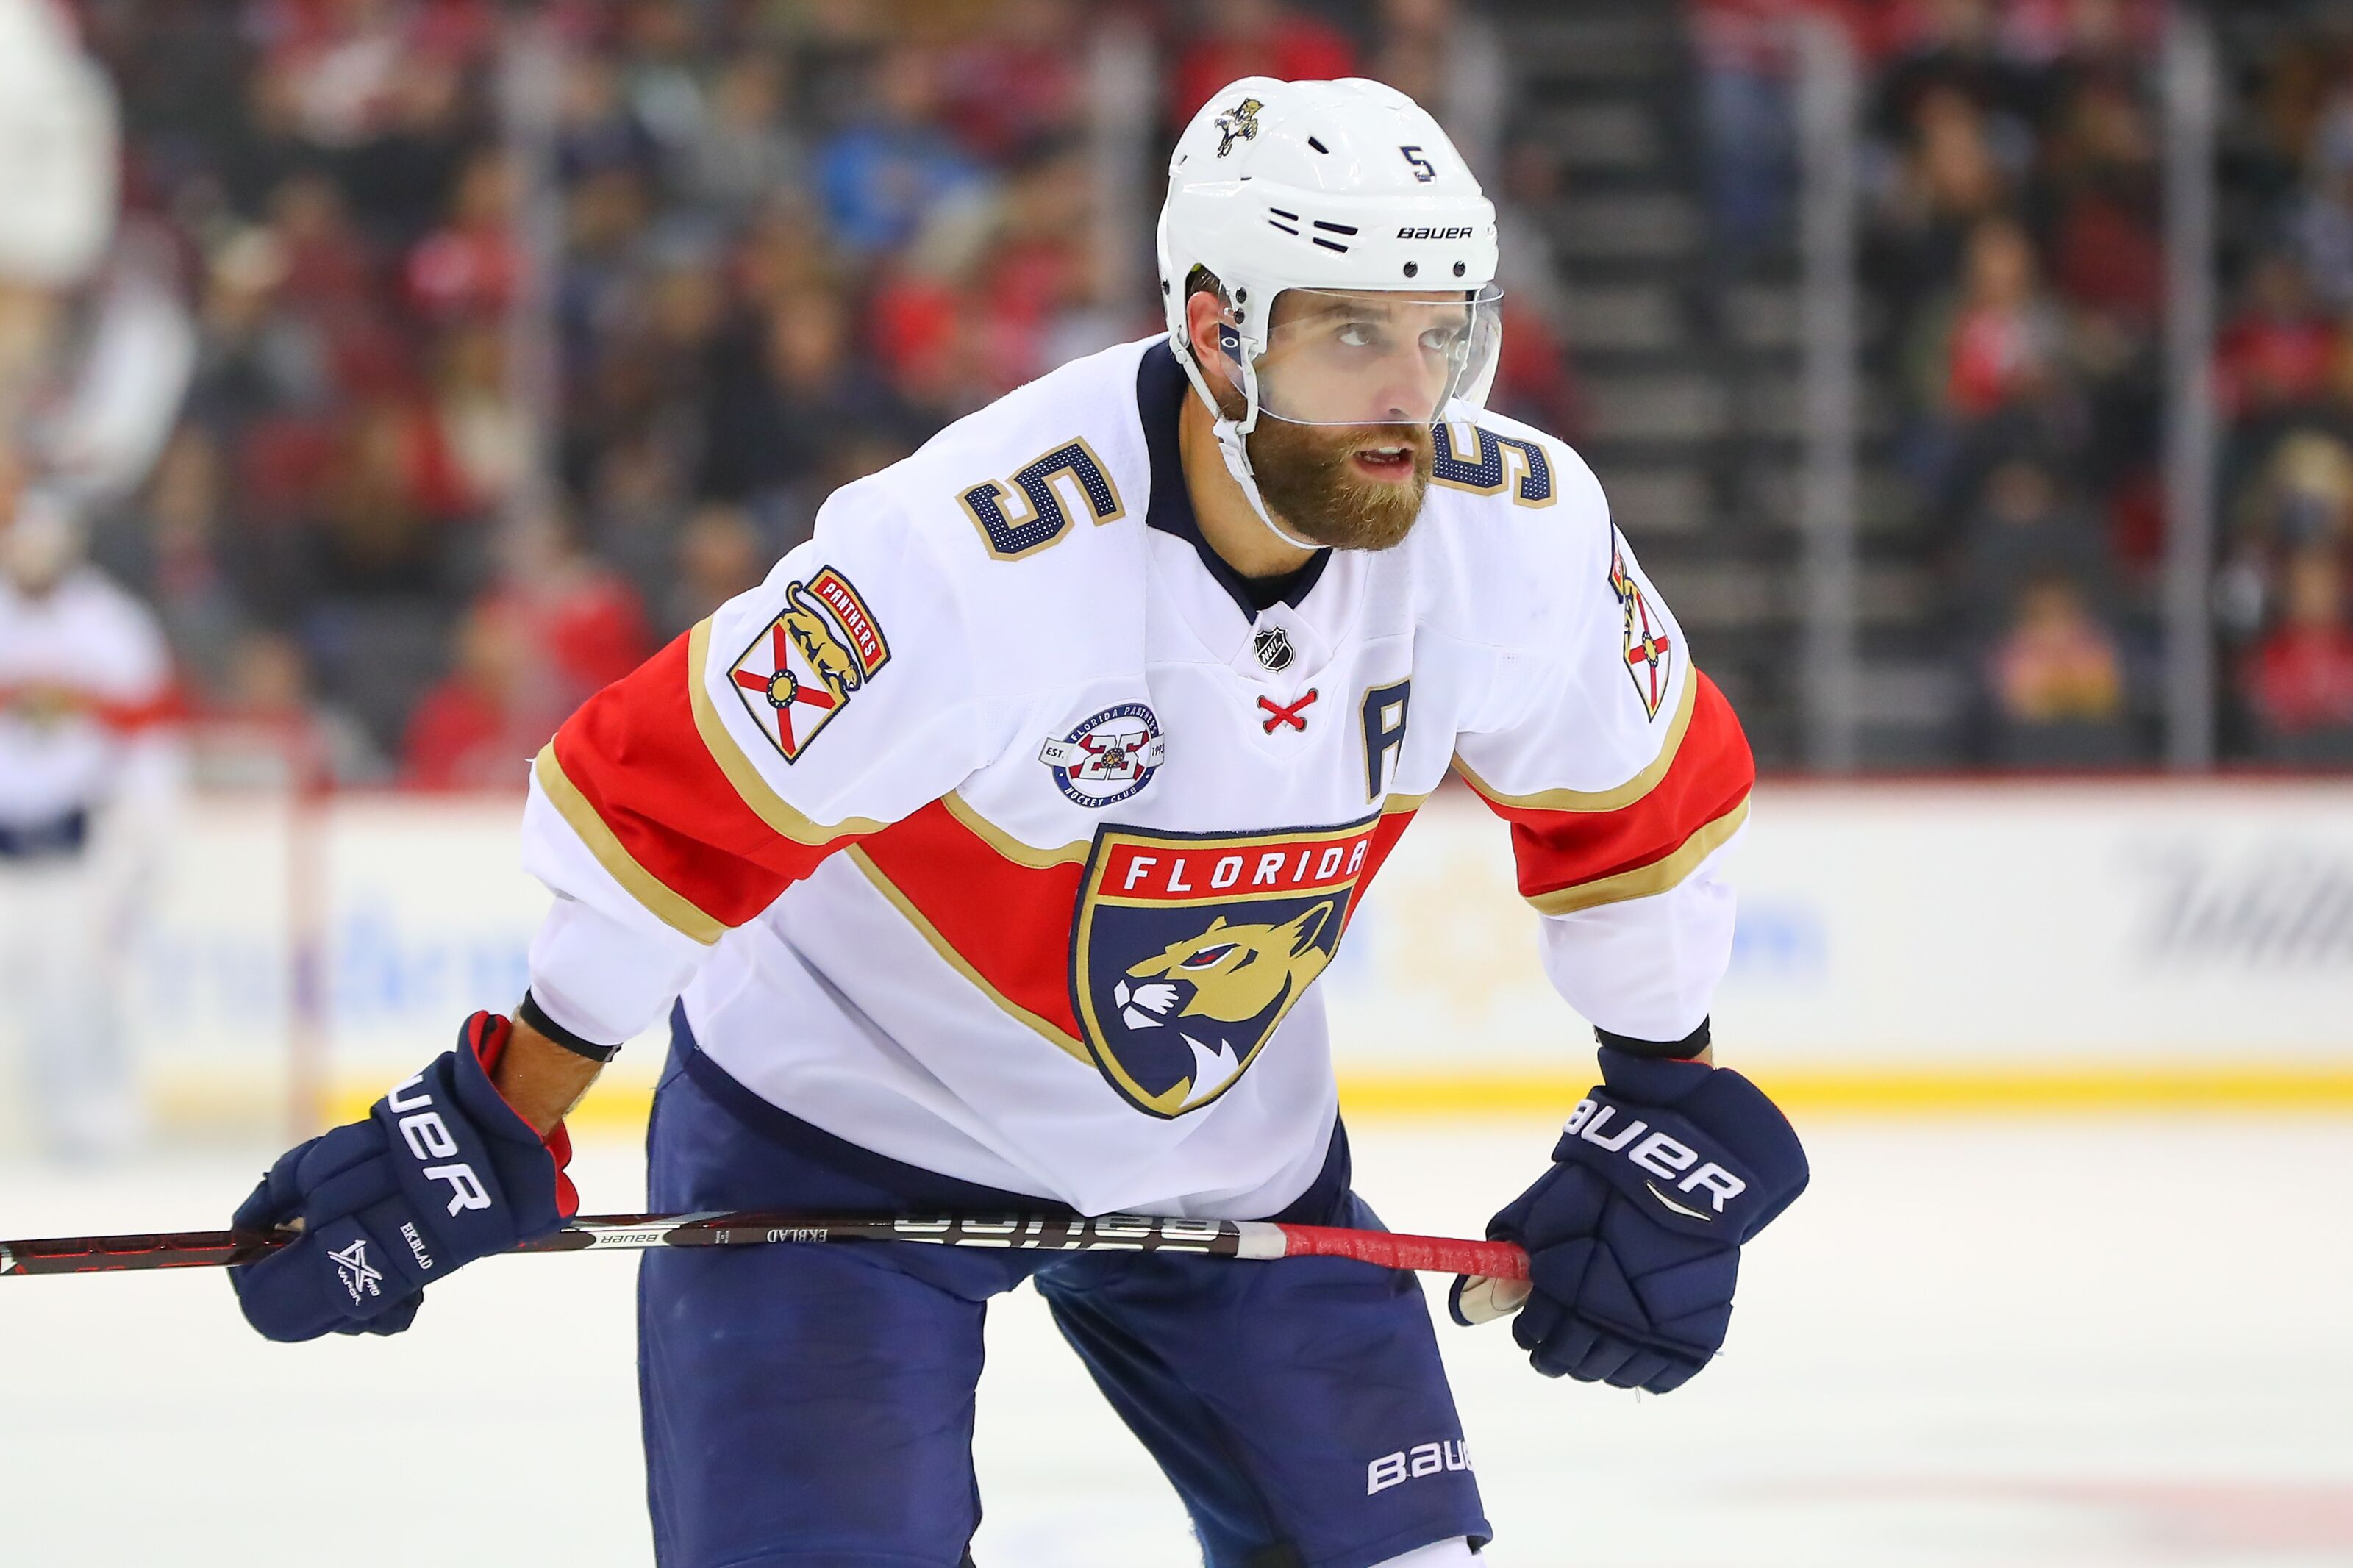 low priced 38fb2 3b842 Florida Panthers: Aaron Ekblad Needs to Get Going Offensively